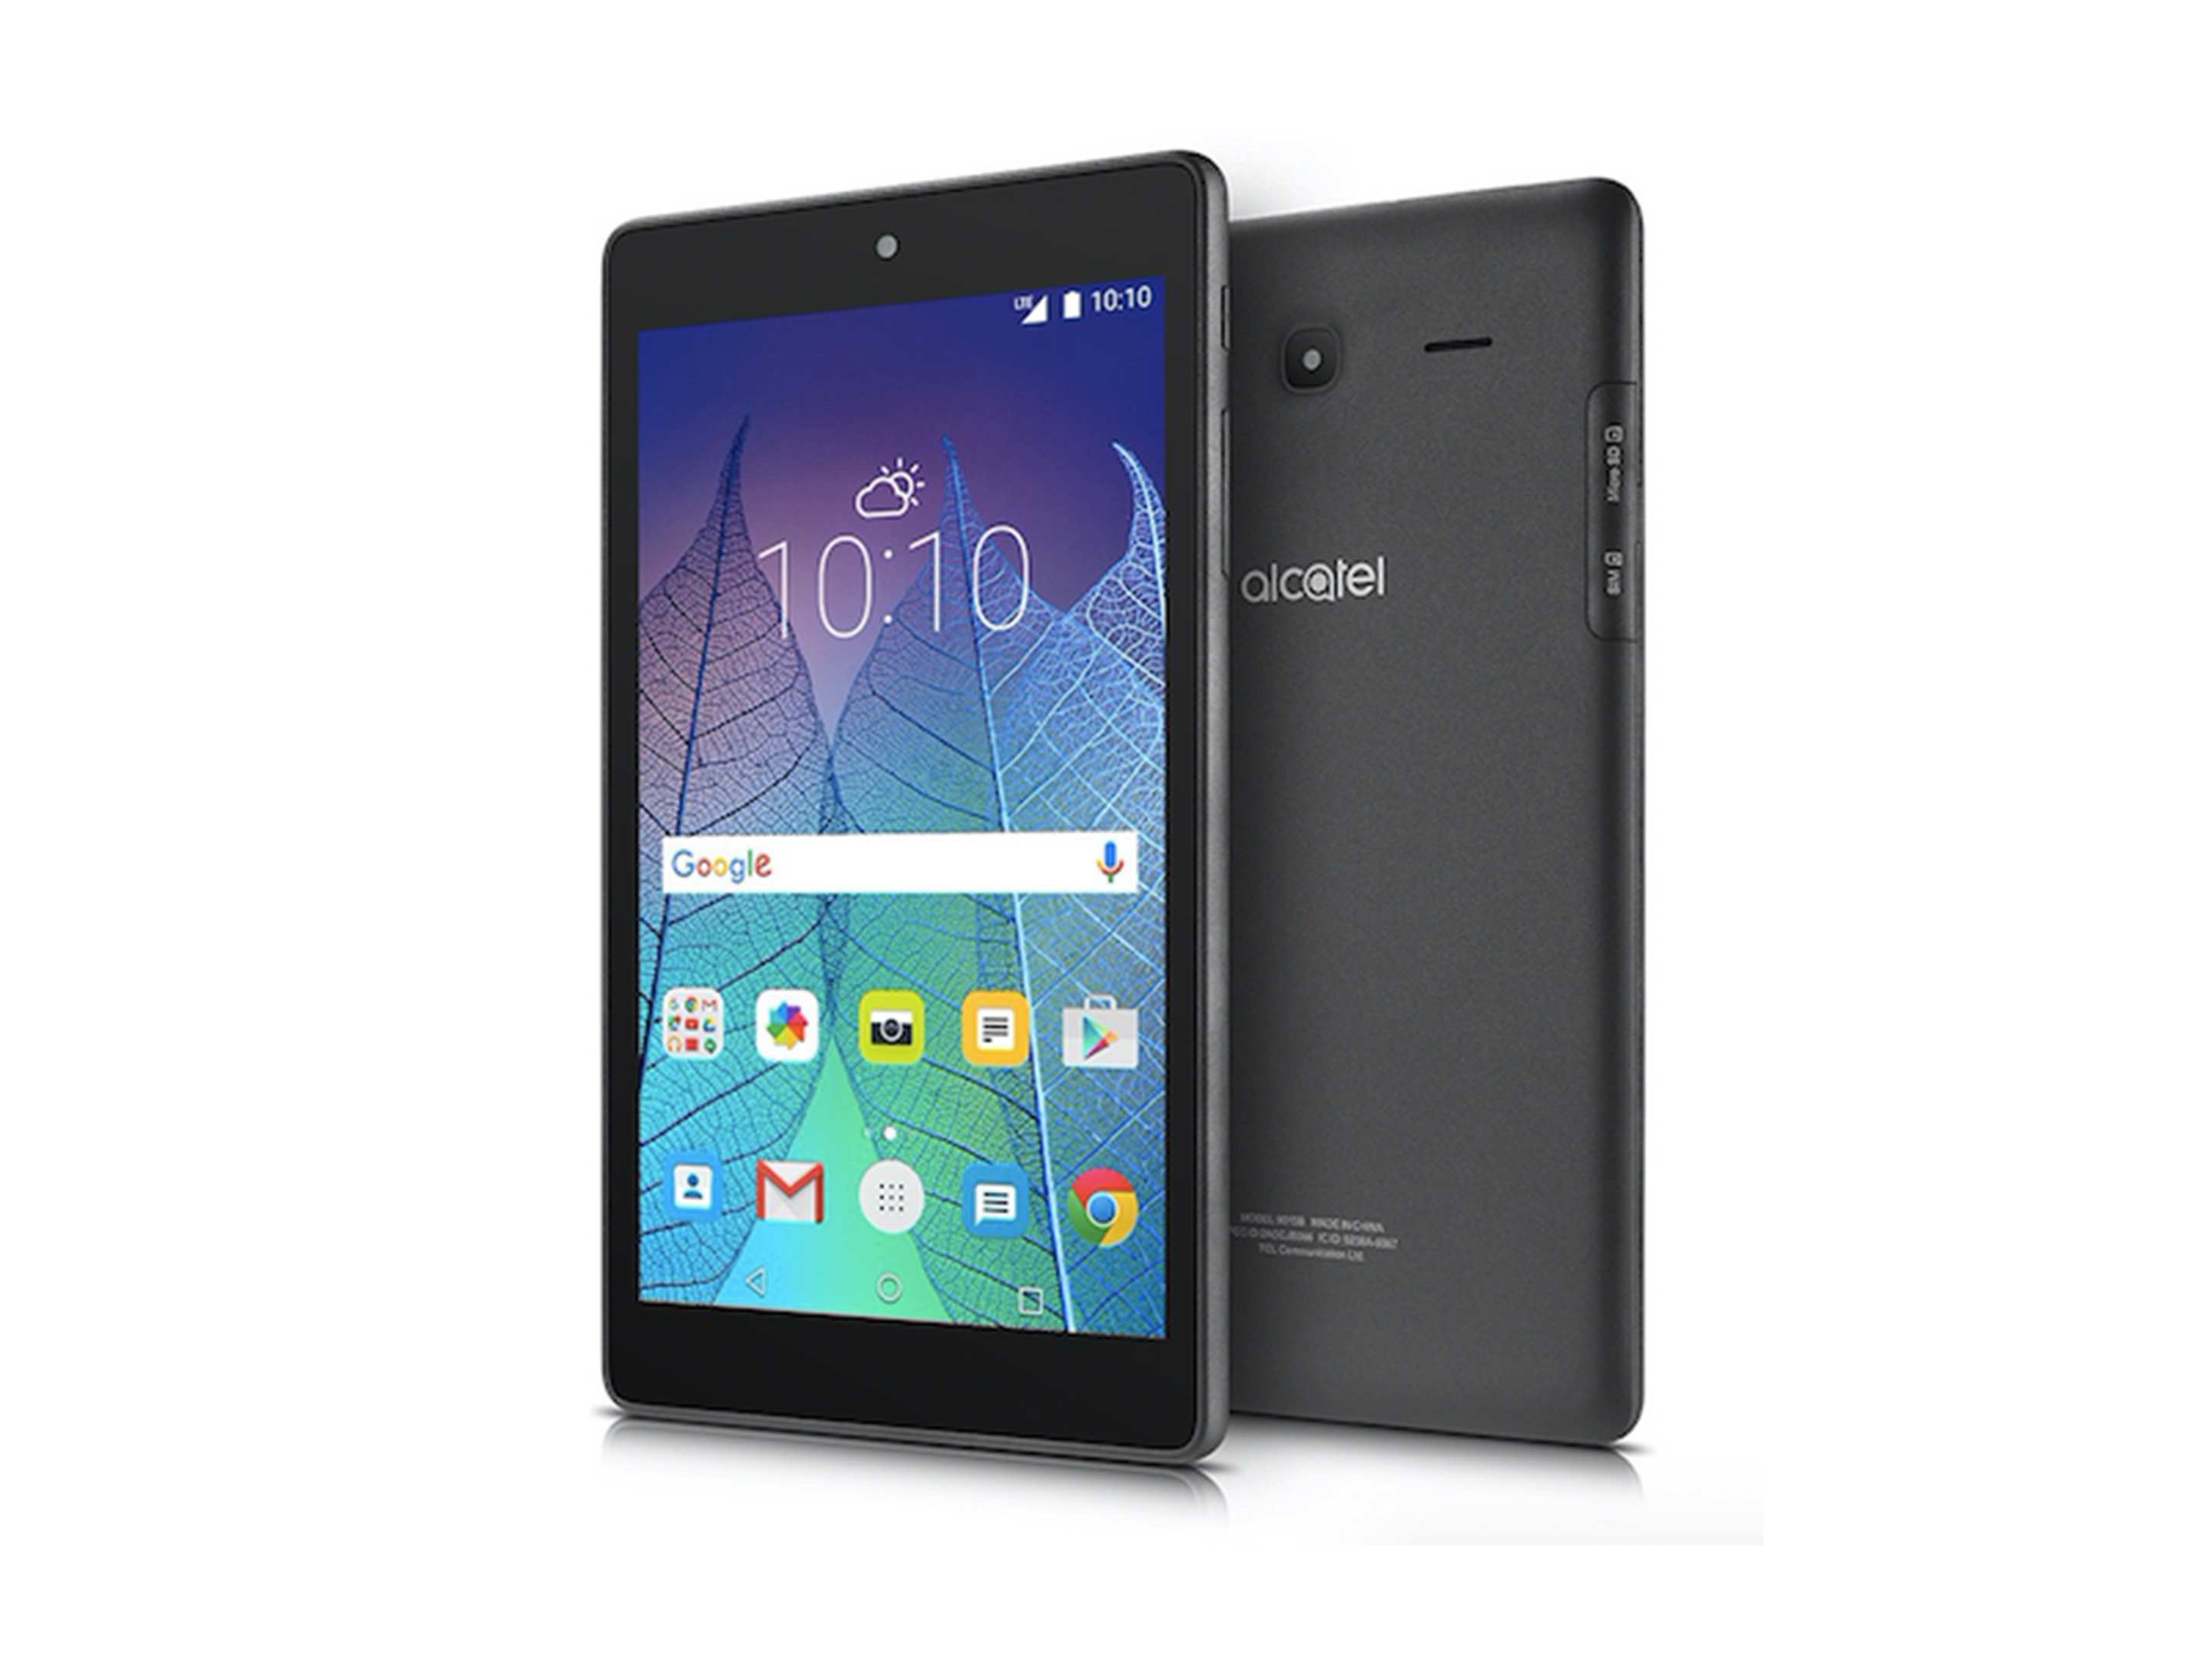 info for cbb9e 1f86c Alcatel's POP 7 LTE tablet hits Telus stores at $0 down   MobileSyrup